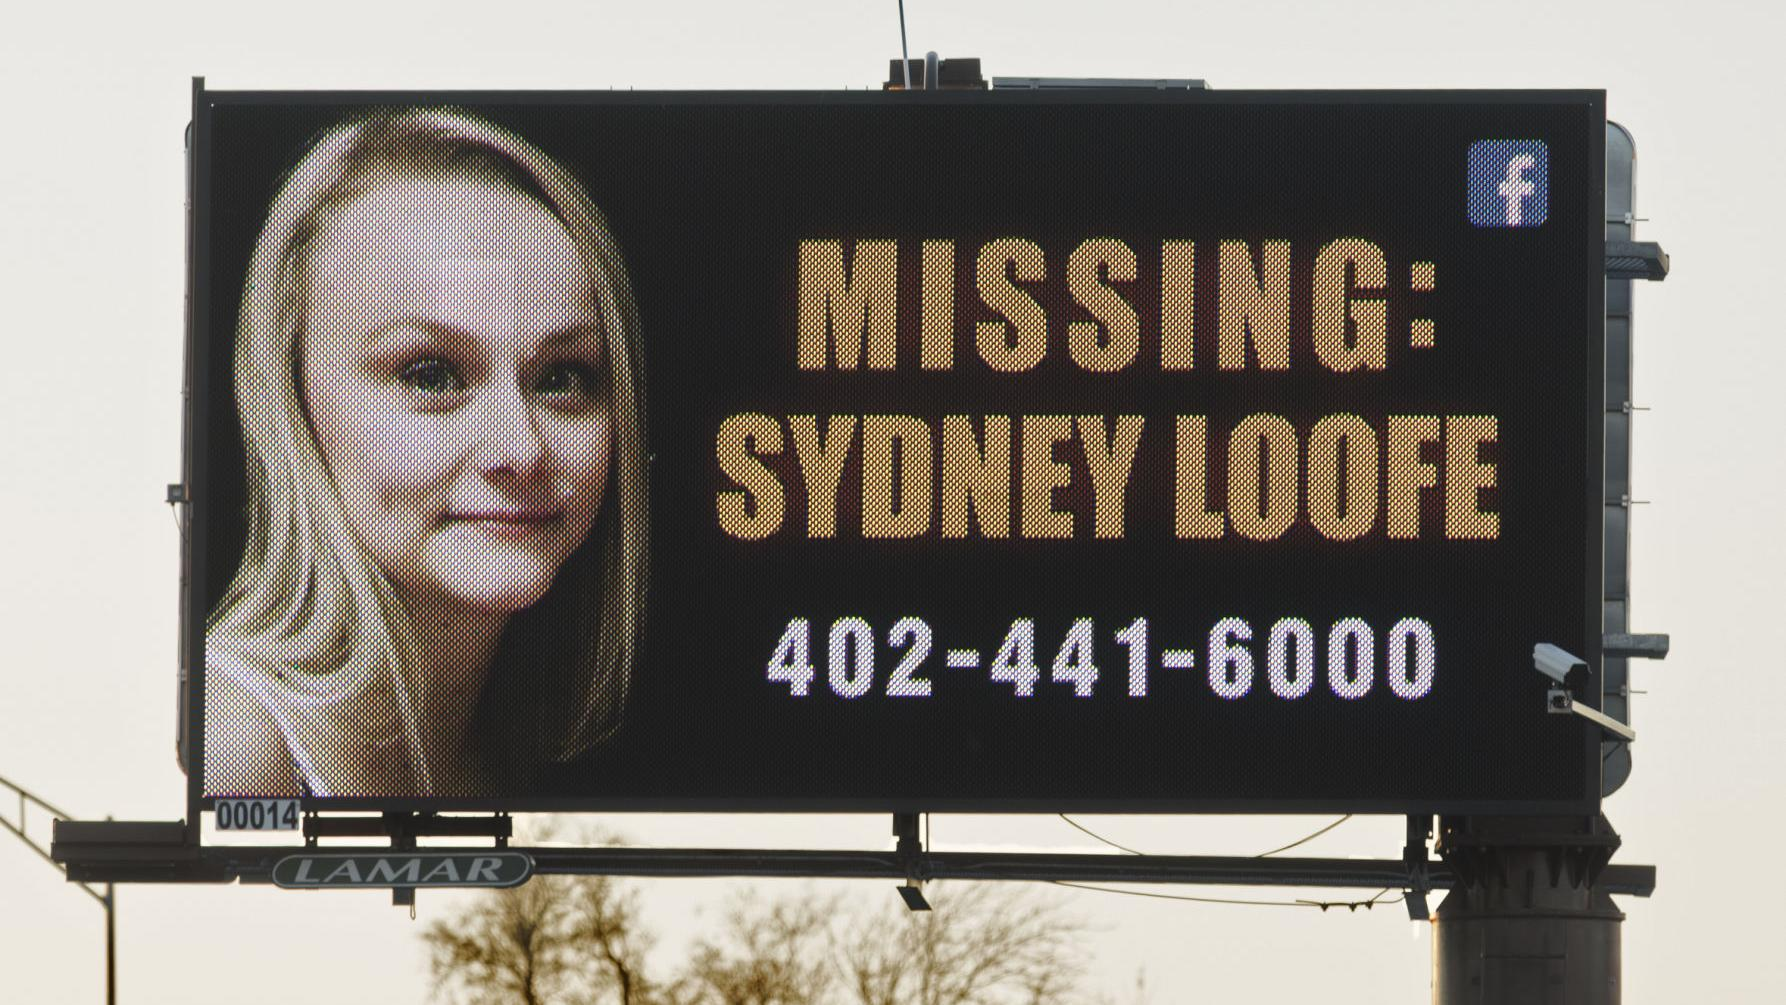 Sydney Loofe Obituary >> Disappearance of Lincoln woman Sydney Loofe 'concerning,' police chief says | Crime and Courts ...